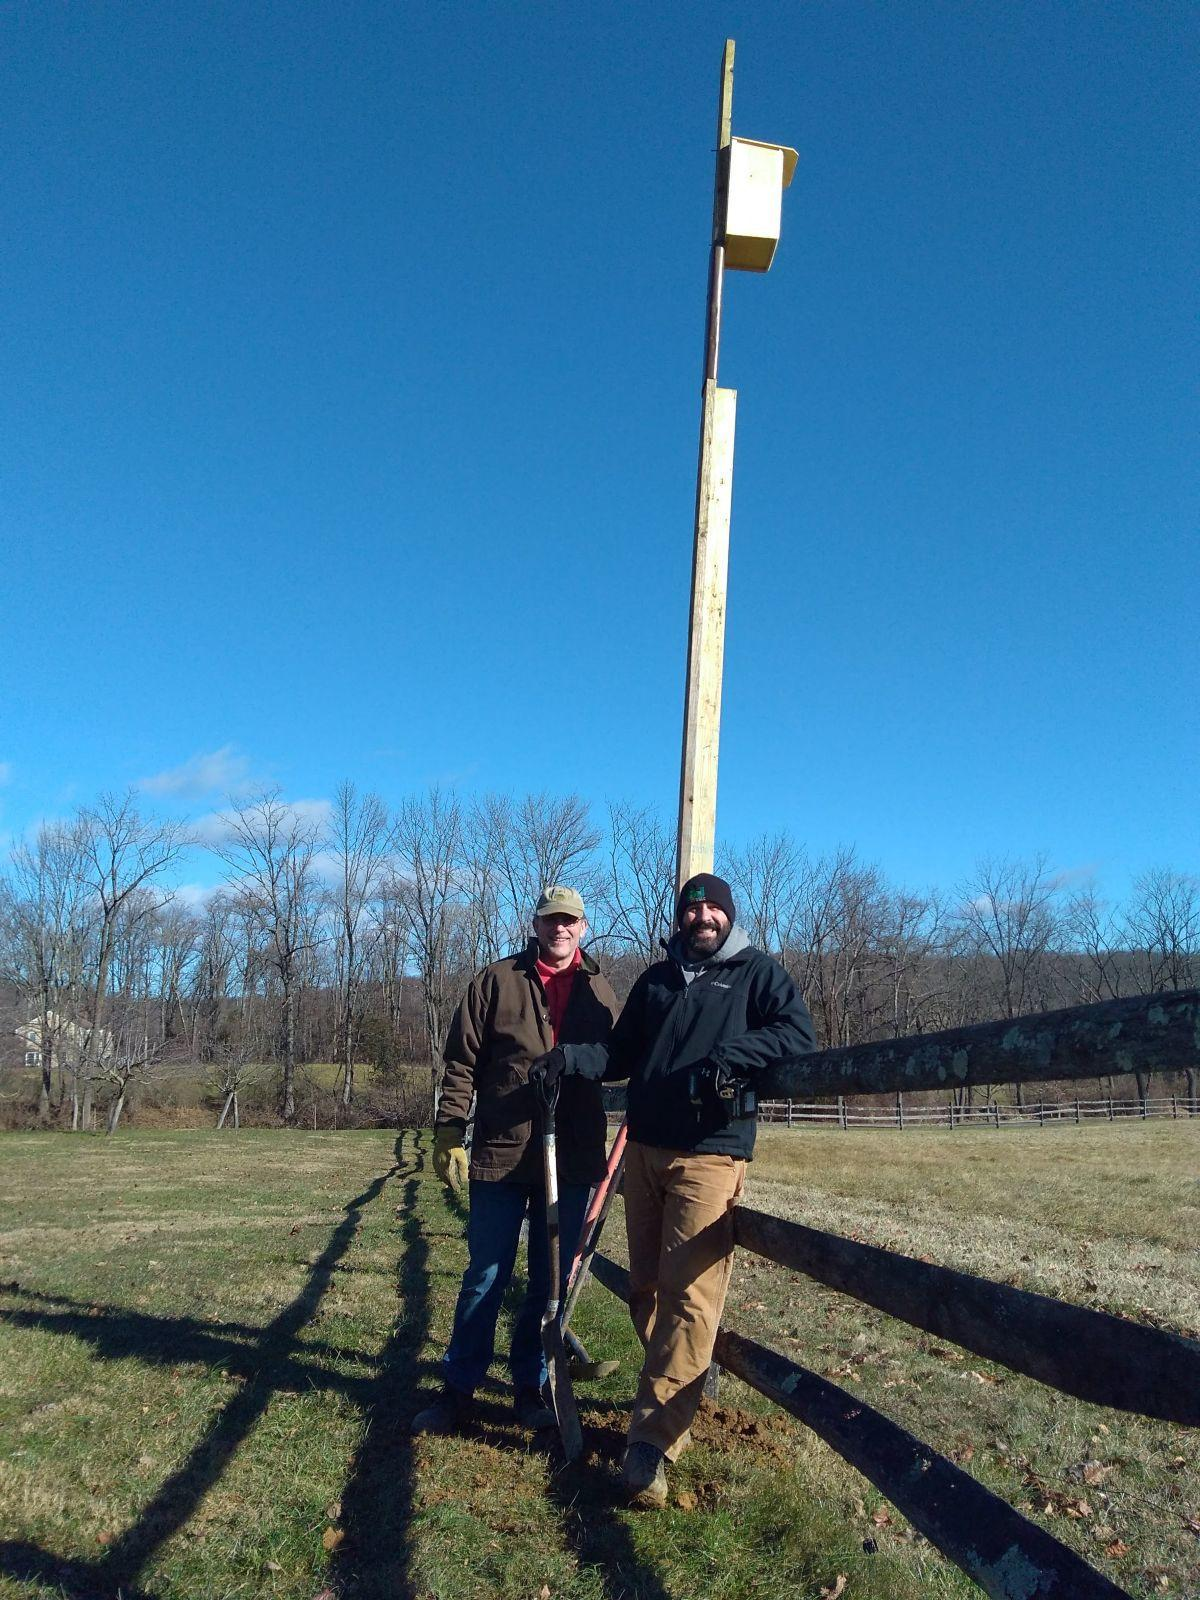 Raritan Headwaters install nest boxes for threatened American kestrels